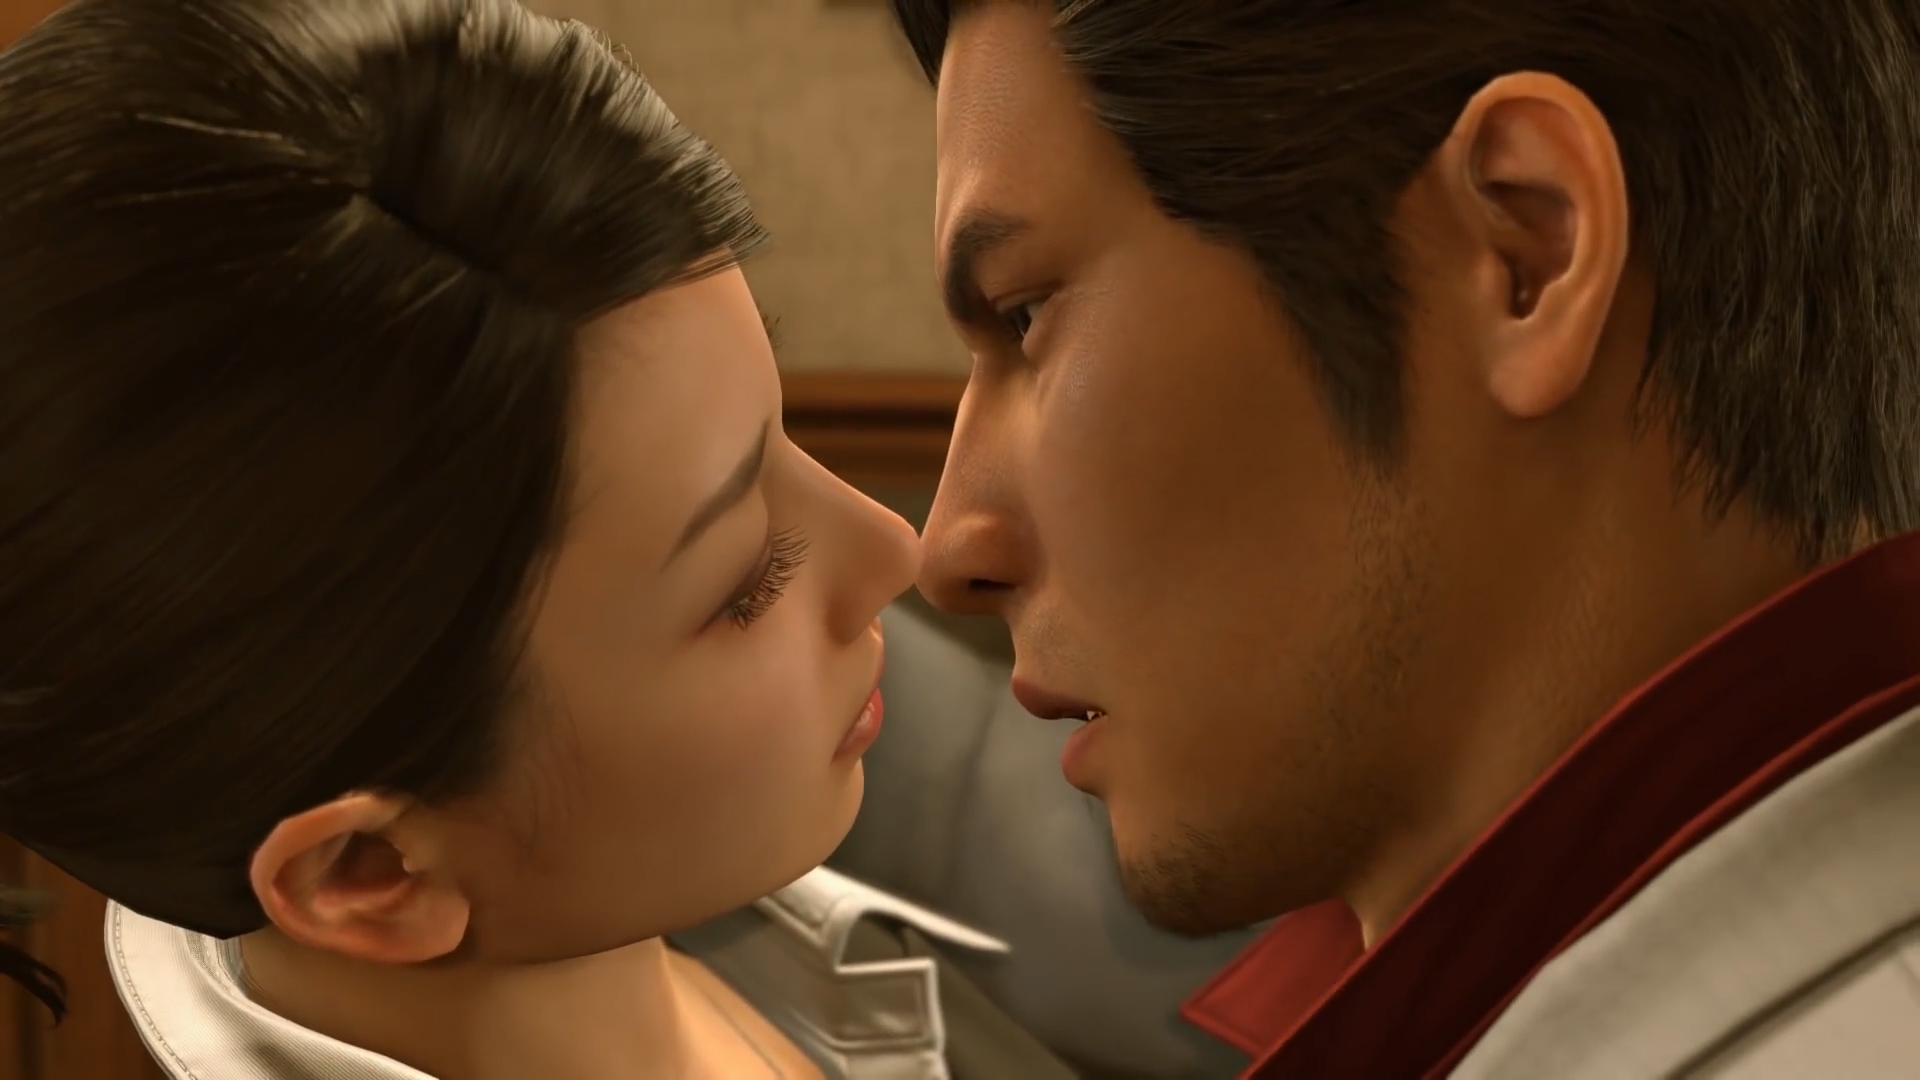 Yakuza Kiwami 2's Brand New Trailer Dives Into A 'Forbidden Romance'